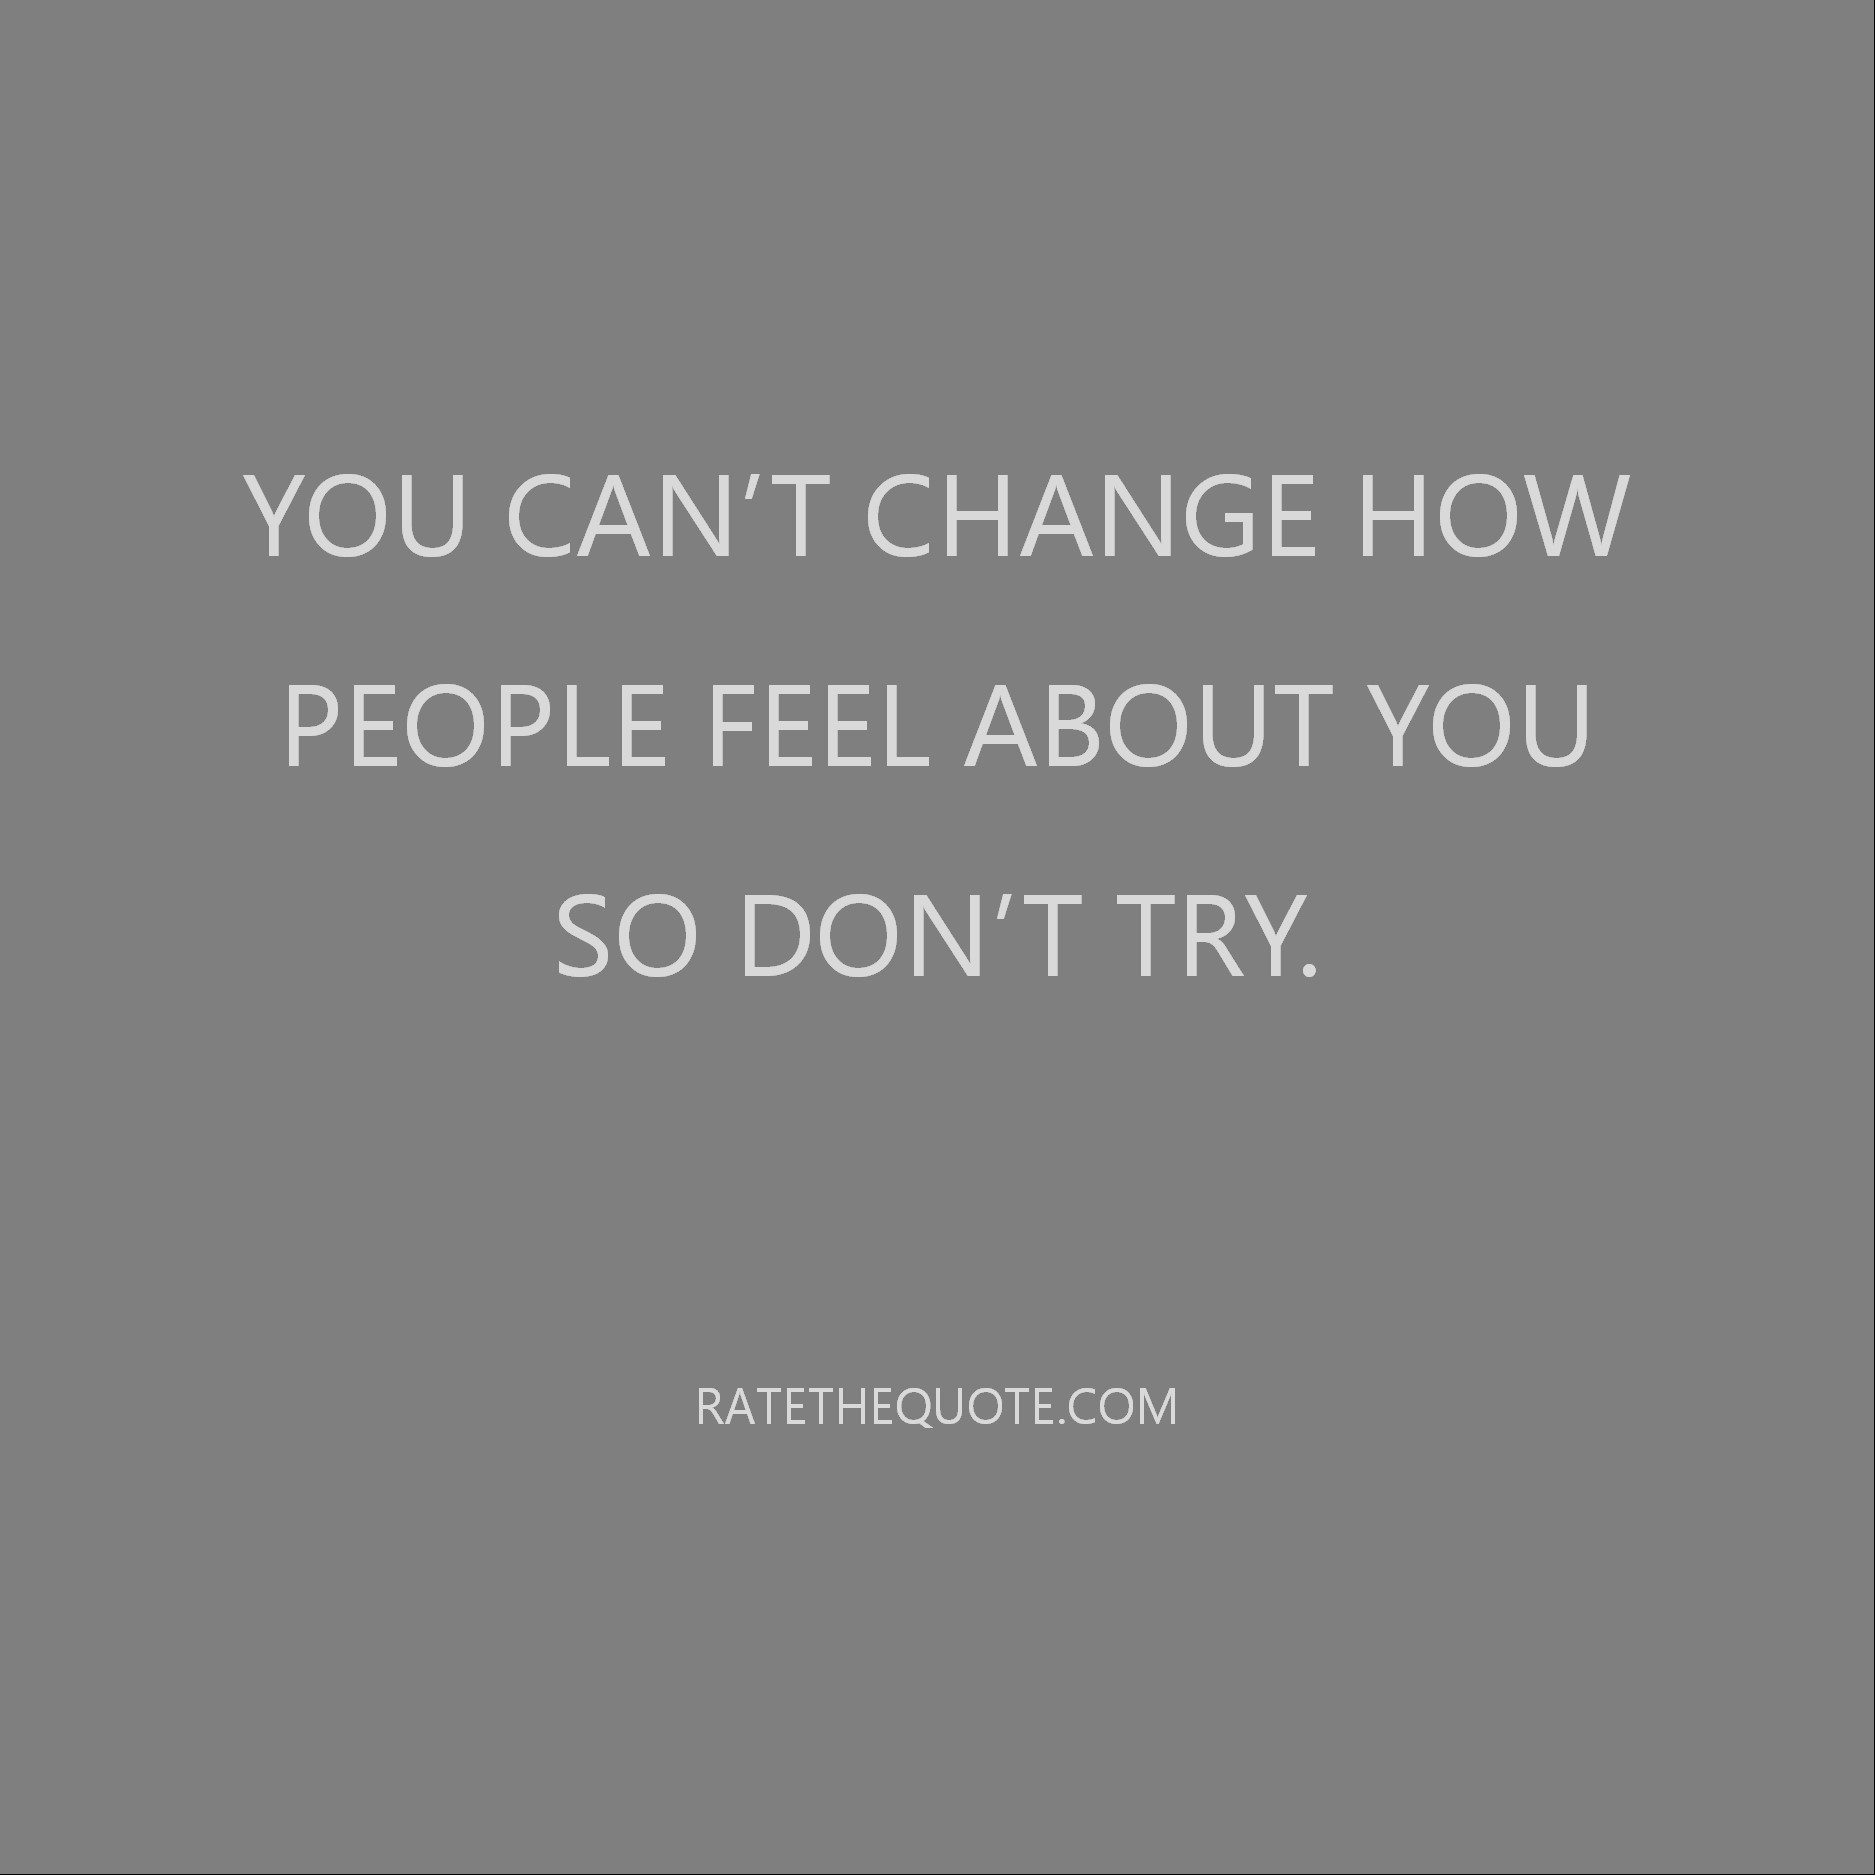 You can't change how people feel about you so don't try.